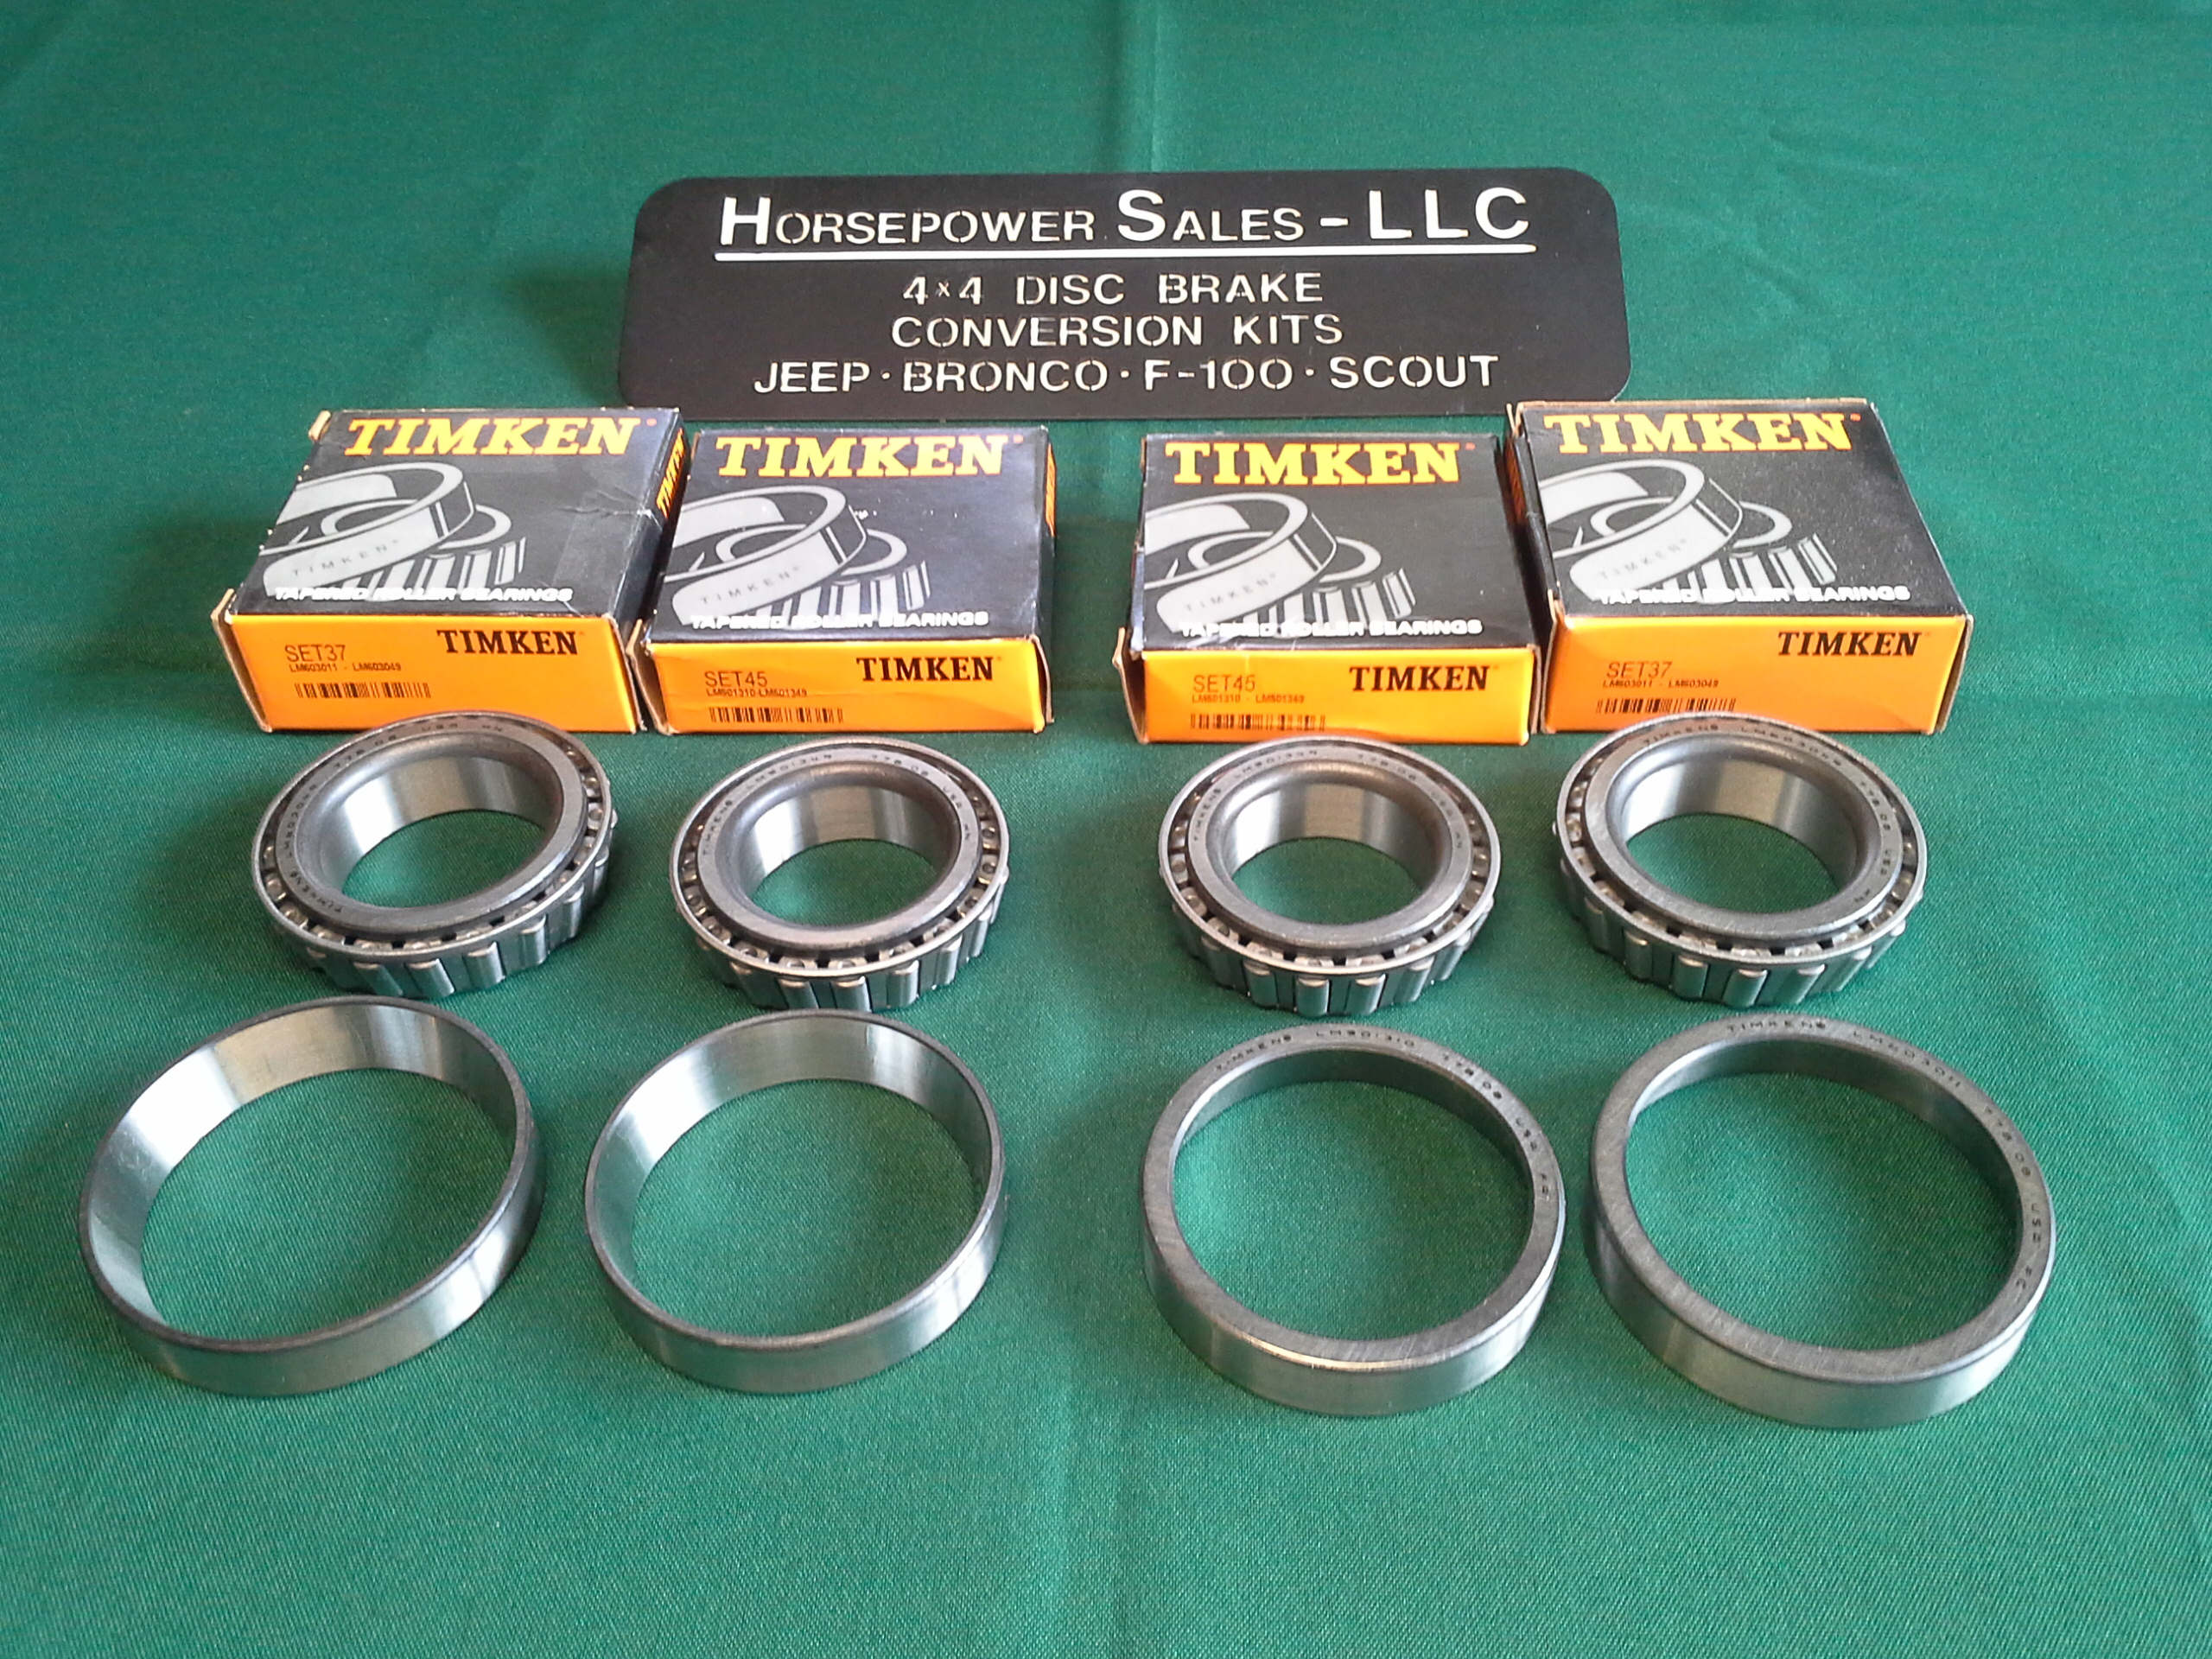 TIMKEN front WHEEL BEARING SET w/RACES for 4x4 Trucks: Ford, Chevy/GM/GMC,  Jeep, Dodge, also for early Bronco Disc Brake Conversions  Set 45 + Set 37